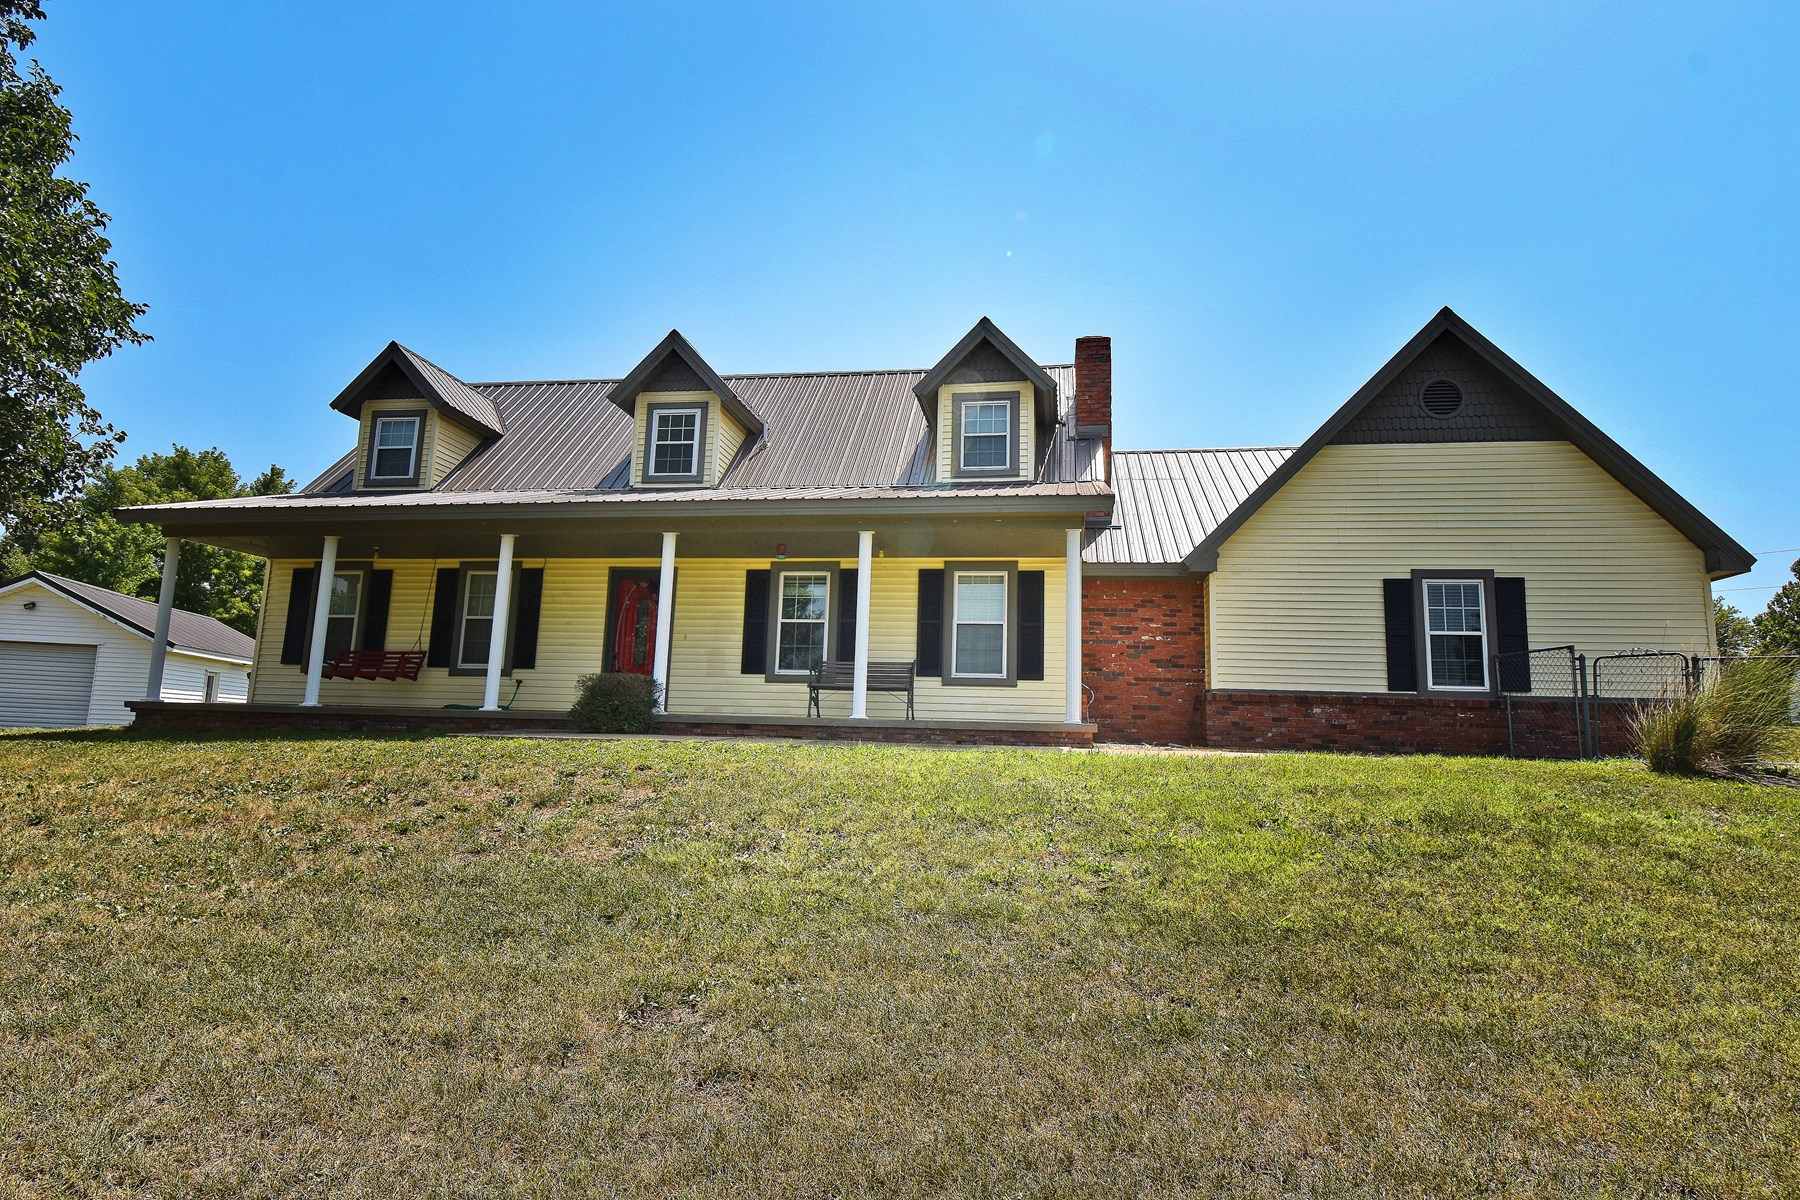 4 bedroom home between Claremore & Pryor Oklahoma